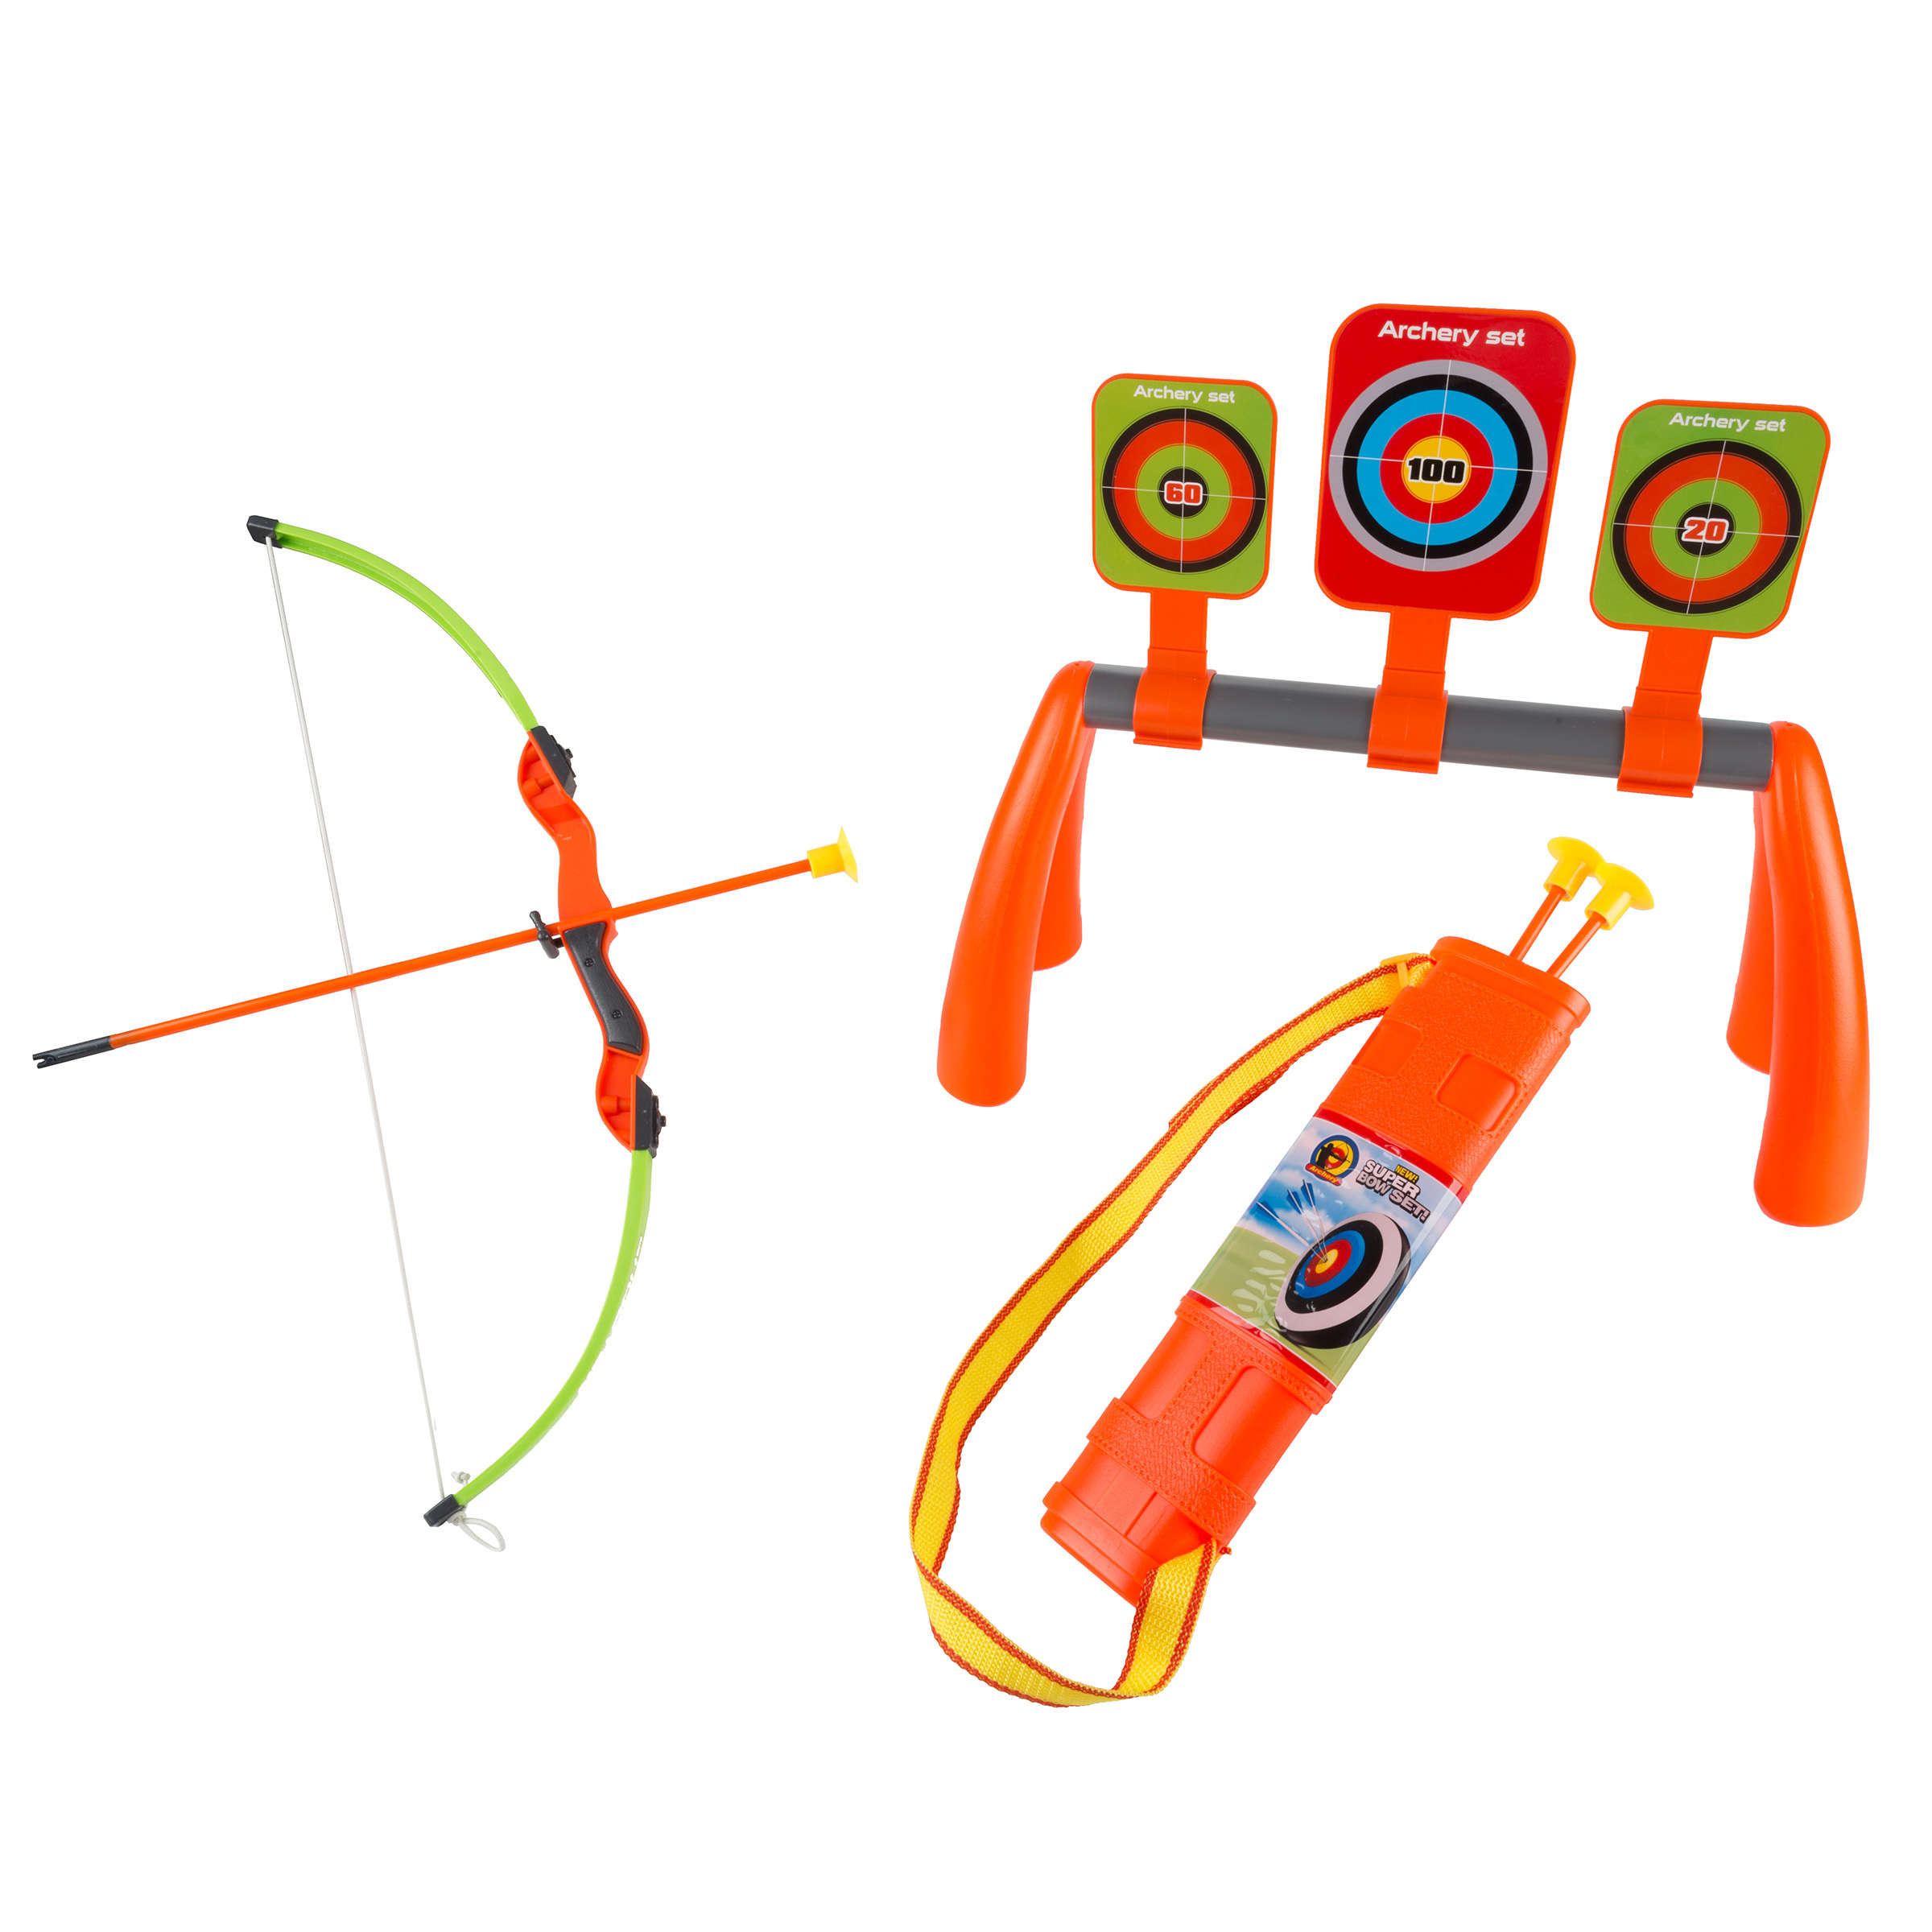 Kids Bow and Arrow Toy Archery 3 Arrows Quiver Target Aim Boards Indoor Outdoor by Hey Play